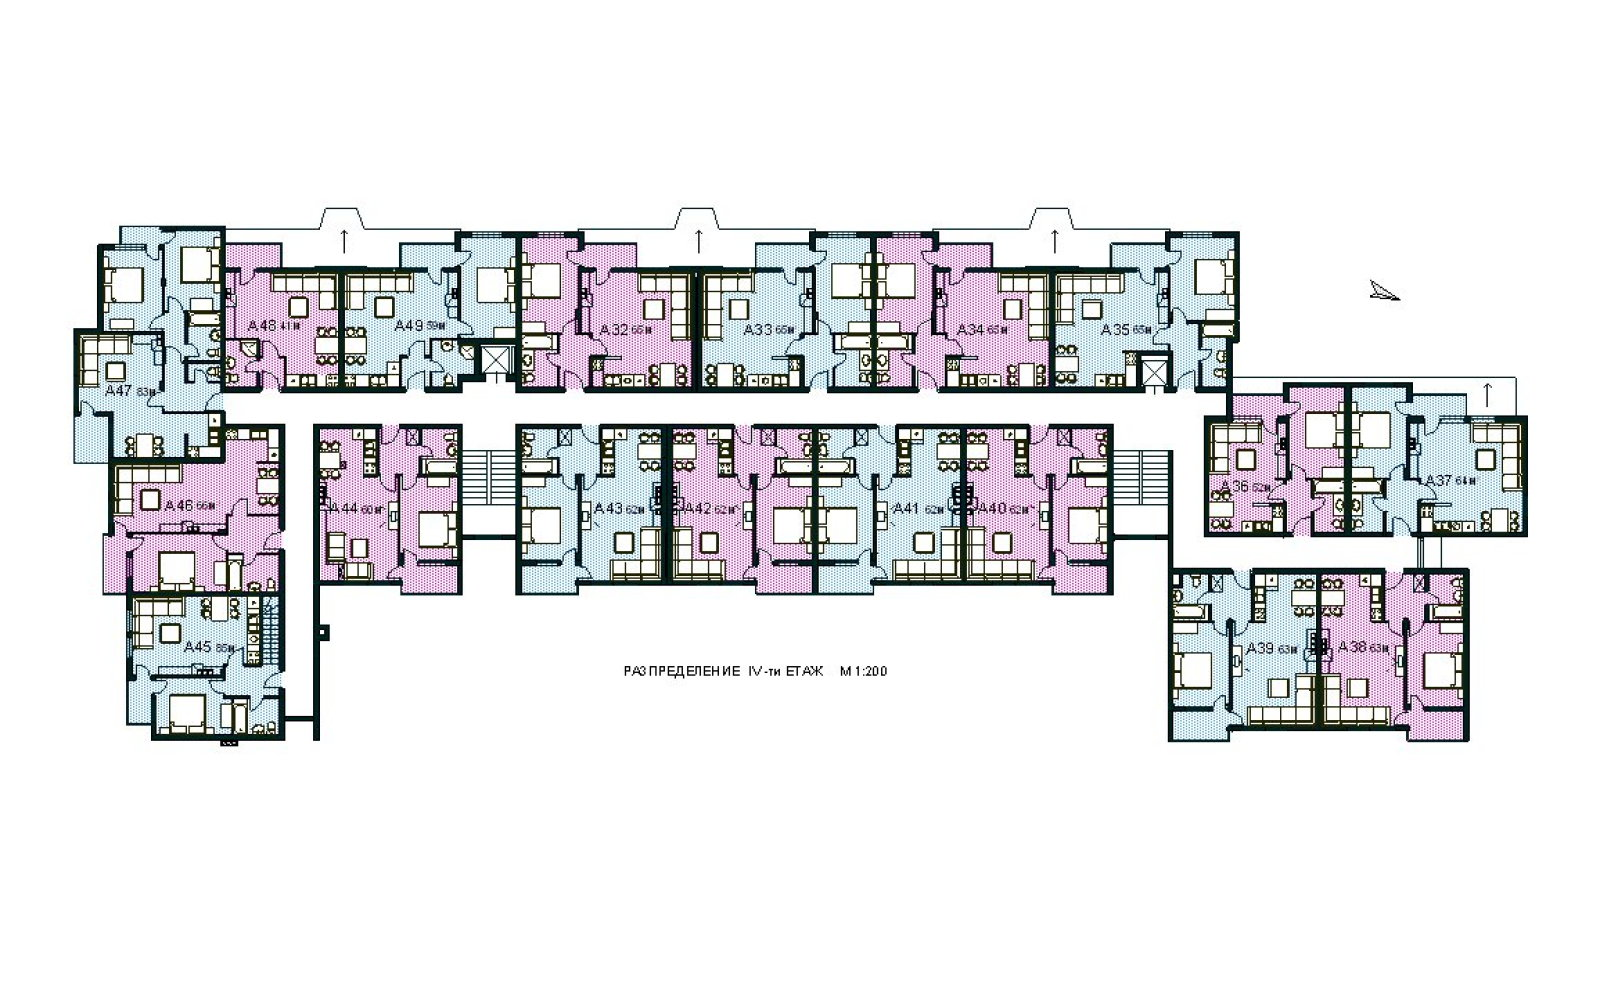 Apartment complex floor plans find house plans for Apartment complex designs